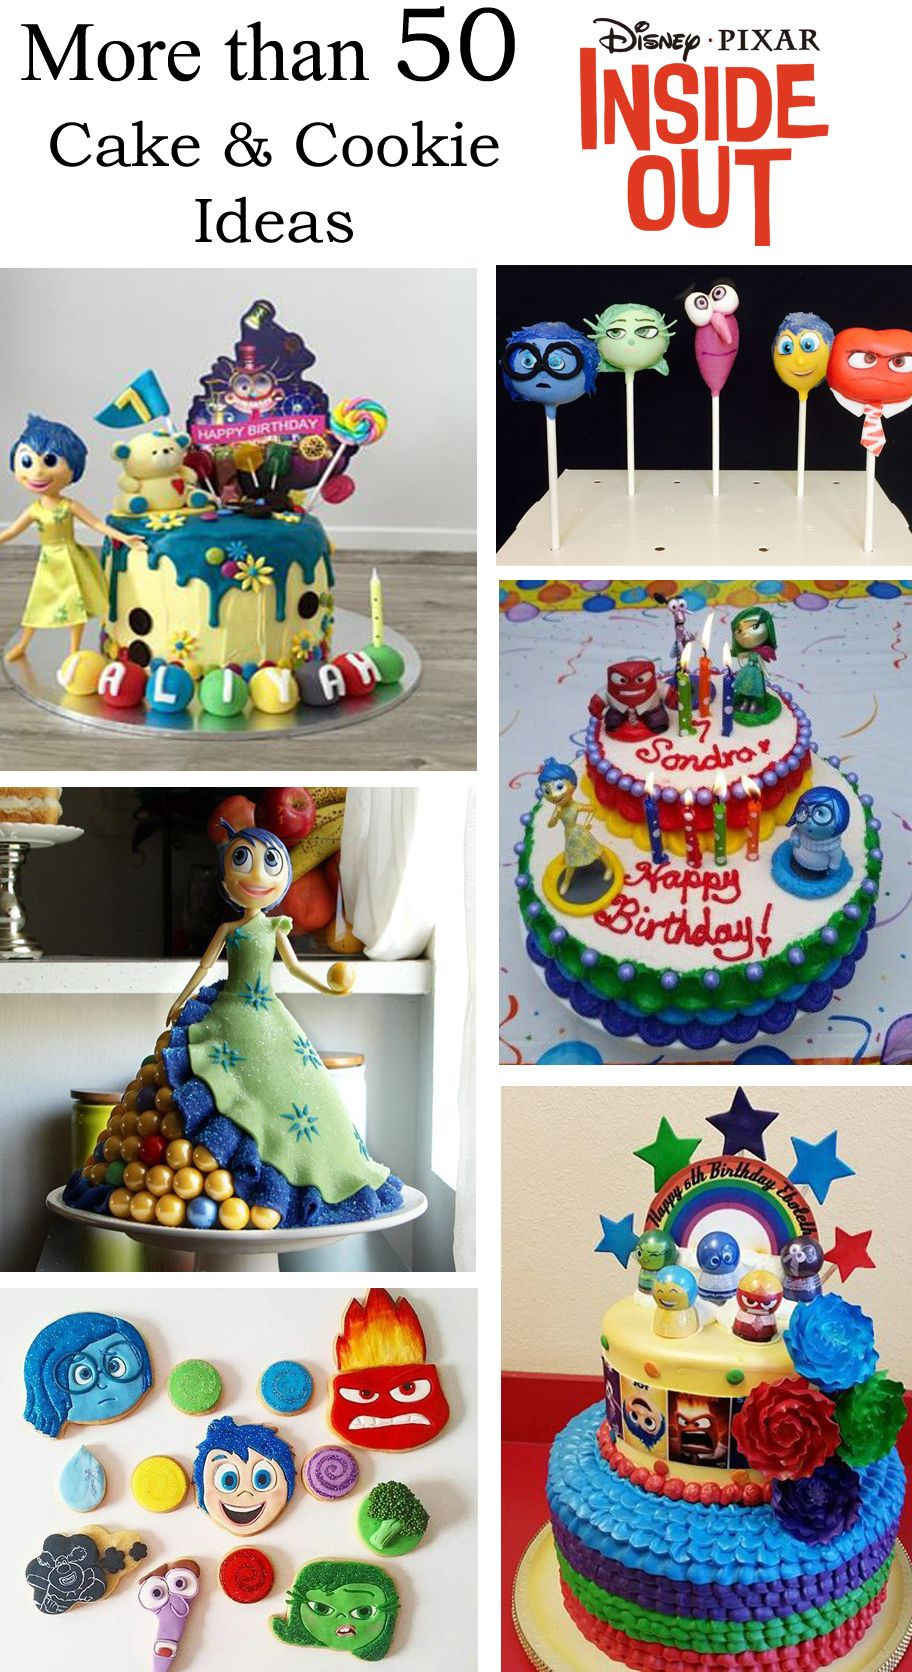 Southern Blue Celebrations Birthdays Cake and Birthday party ideas